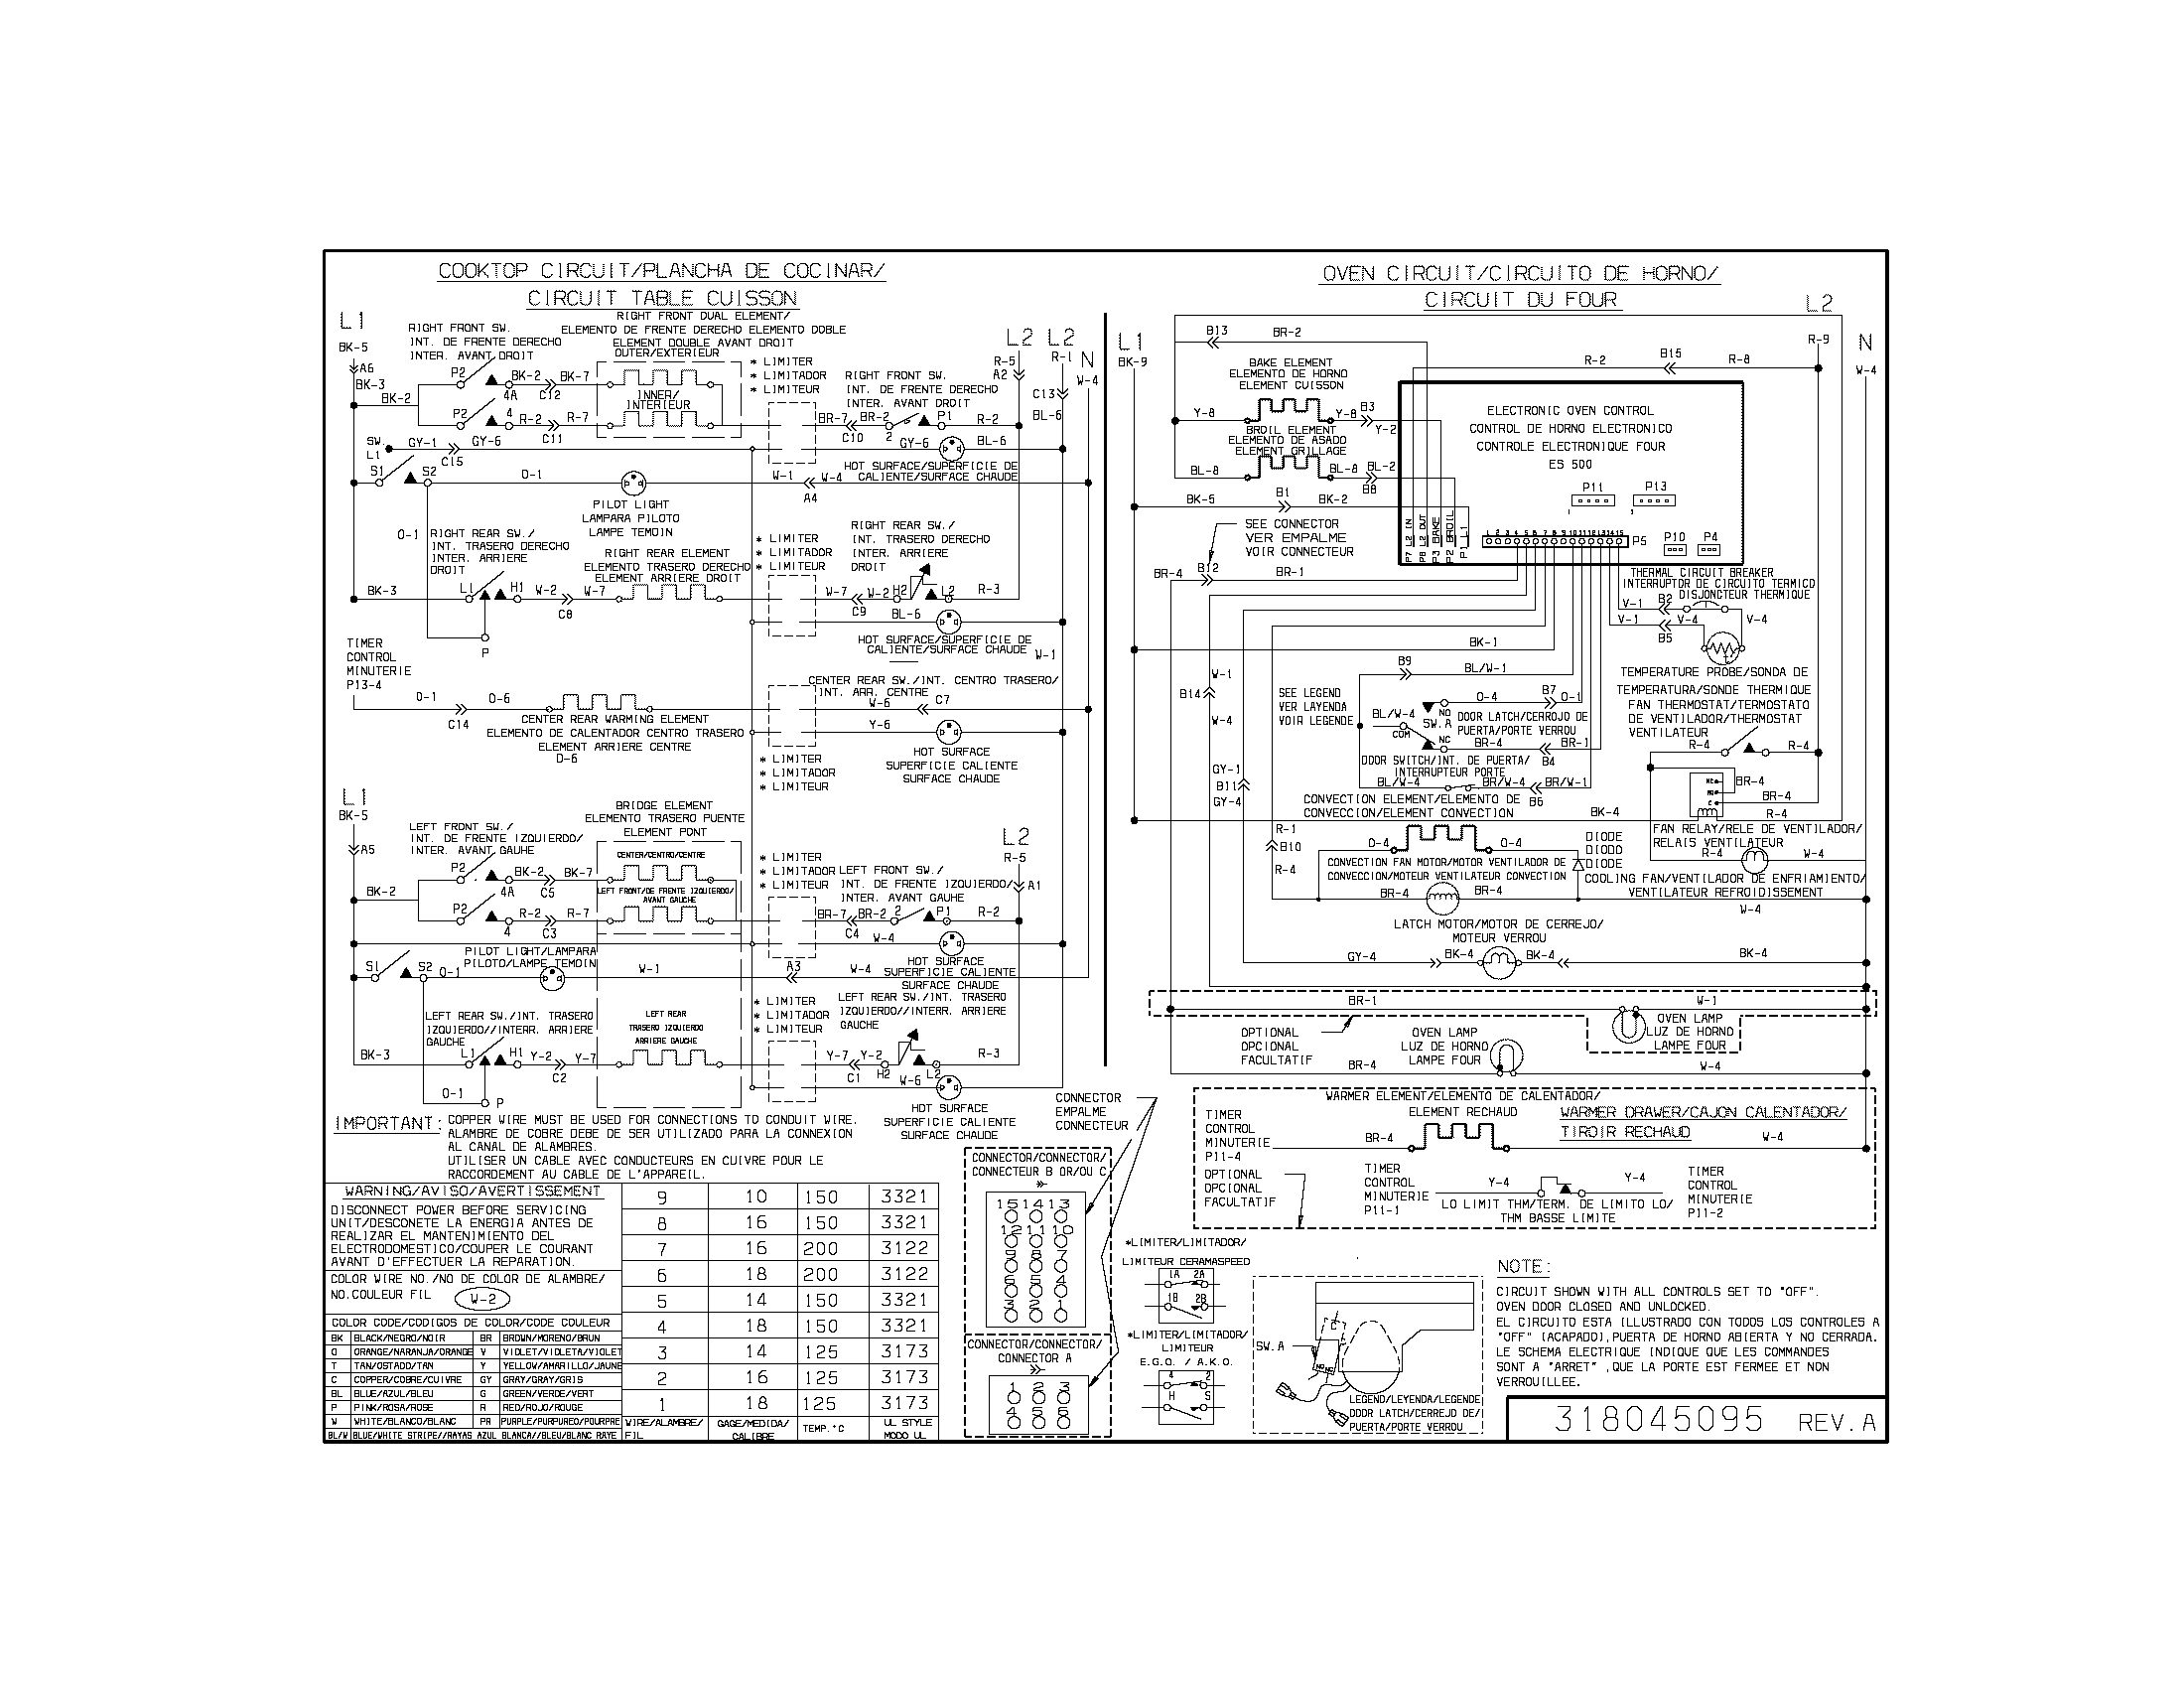 wiring diagram parts frigidaire cpes389ac1 range timer stove clocks and appliance timers Frigidaire Refrigerator Troubleshooting at n-0.co